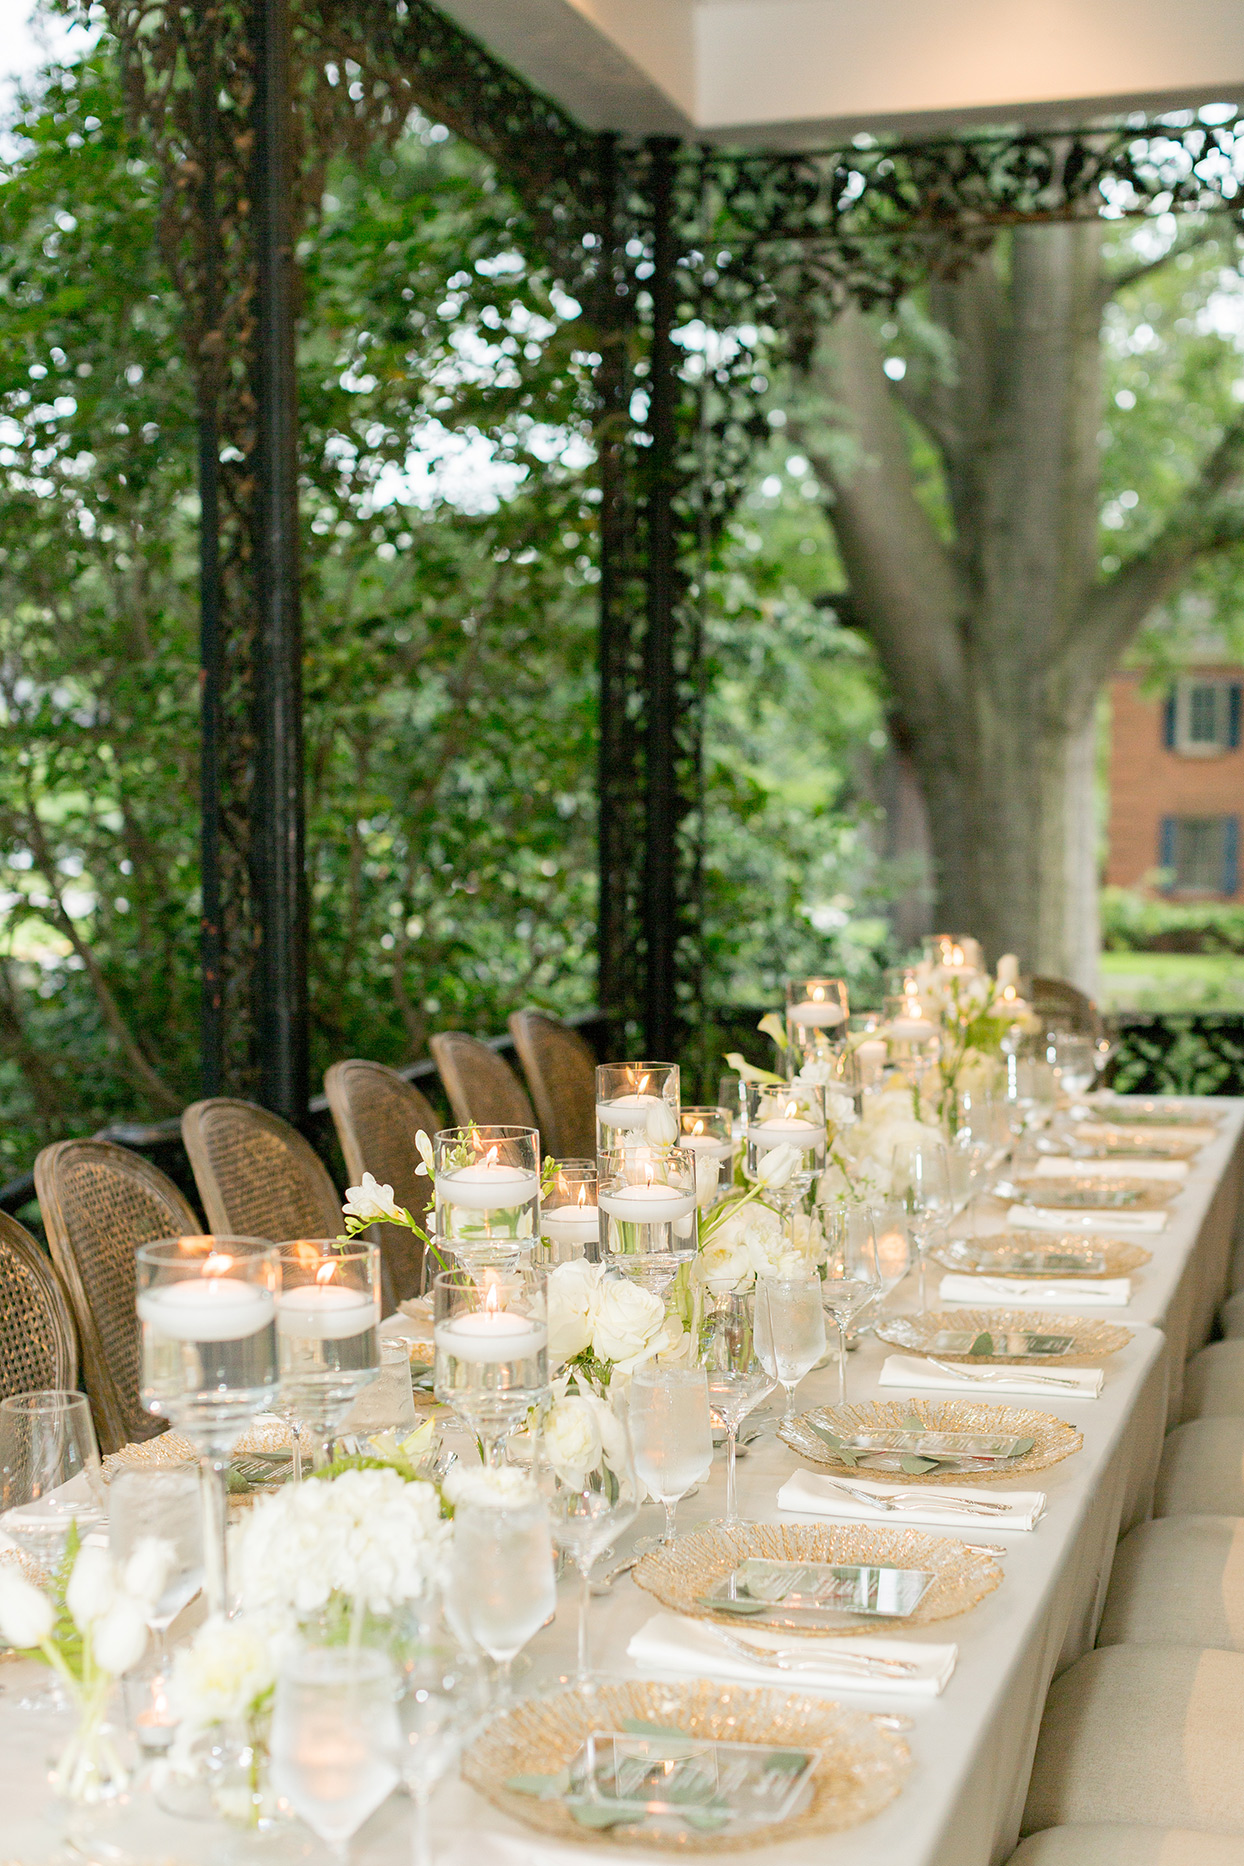 floating candles and white floral centerpieces